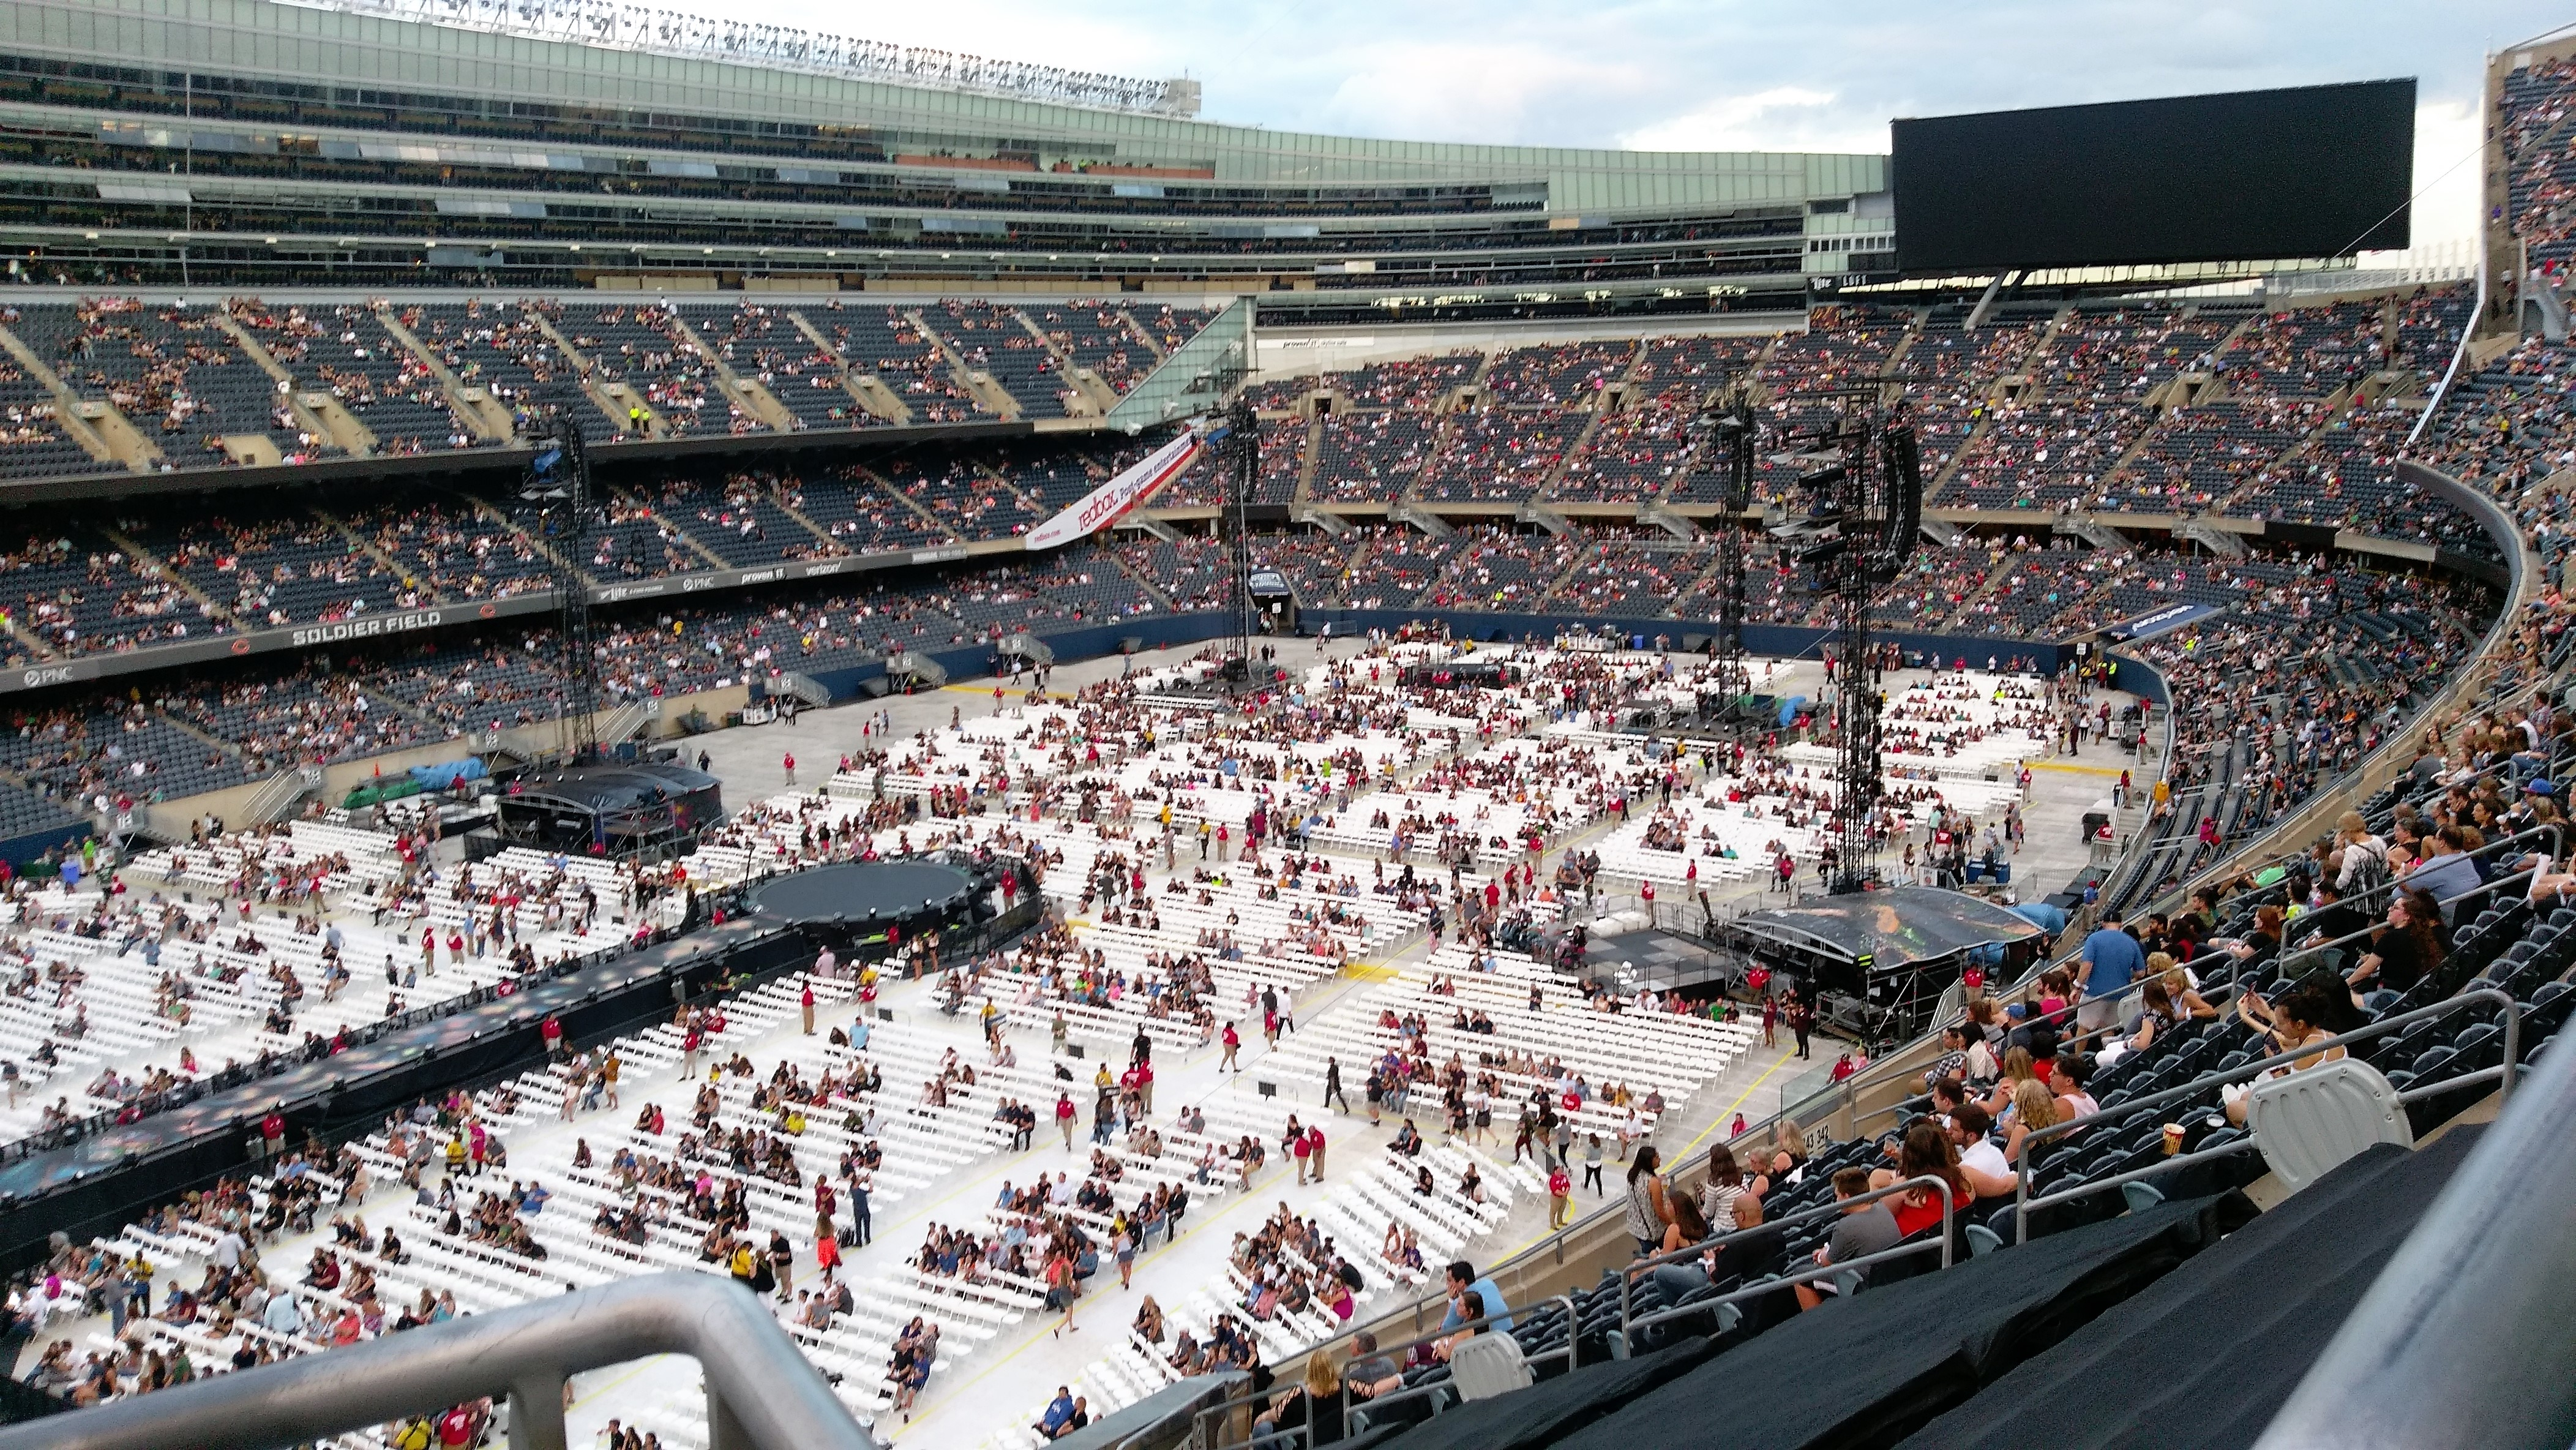 spectacular coldplay concert in chicago urban culture tribe. Black Bedroom Furniture Sets. Home Design Ideas